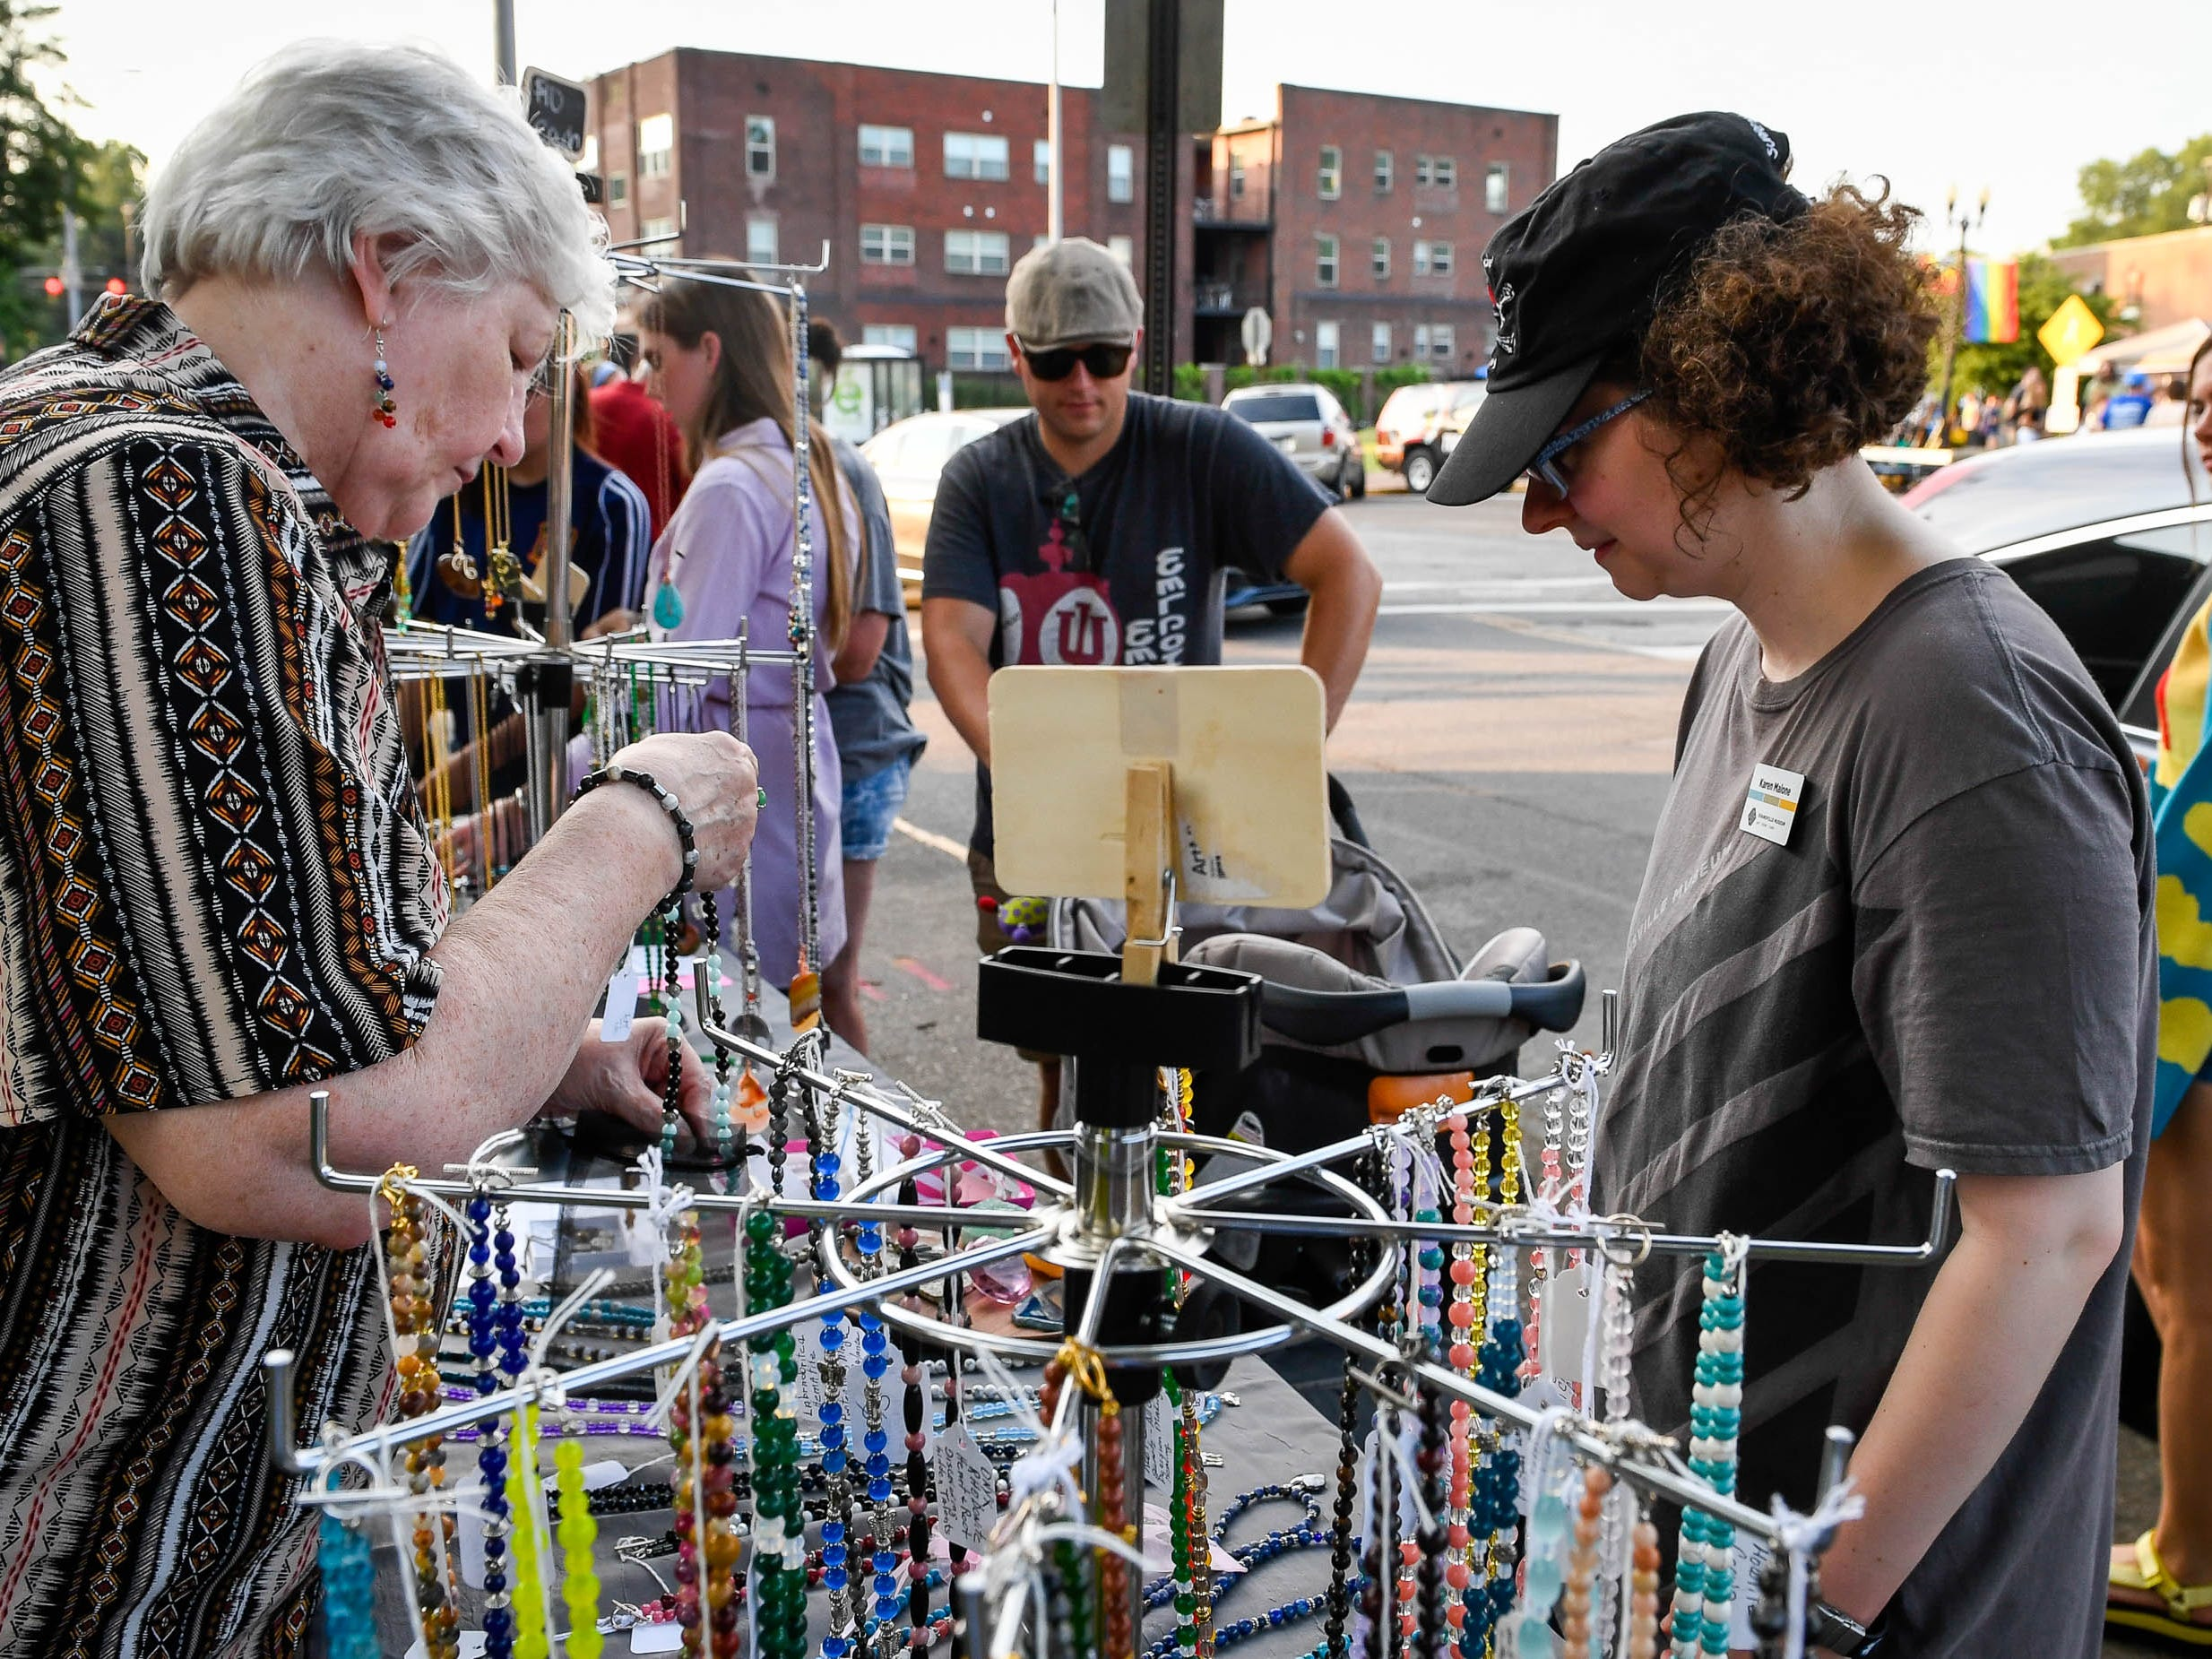 Karen Malone, right, buys a neckless from Marilla Walthen at her R&J Chakra Jewelry table during the Haynie's Corner First Friday event in the downtown Arts District Friday, August 3, 2018.